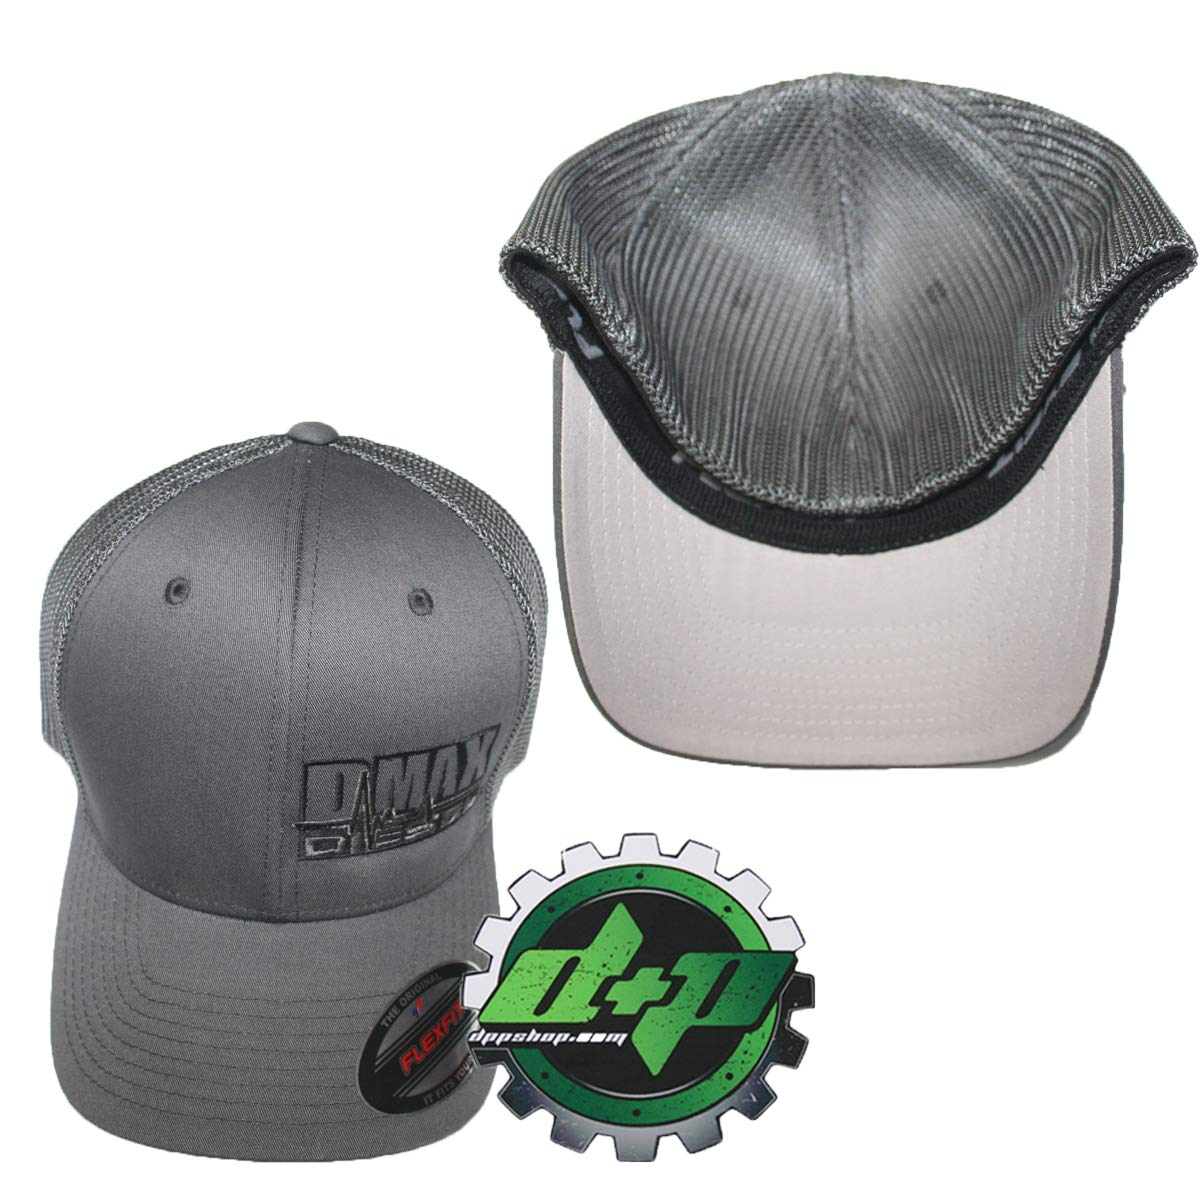 bfe8f5e0e Amazon.com: OSFM DMAX Diesel Flexfit Fitted Flex fit Ball Cap hat Chevy  Duramax Charcoal: Sports & Outdoors